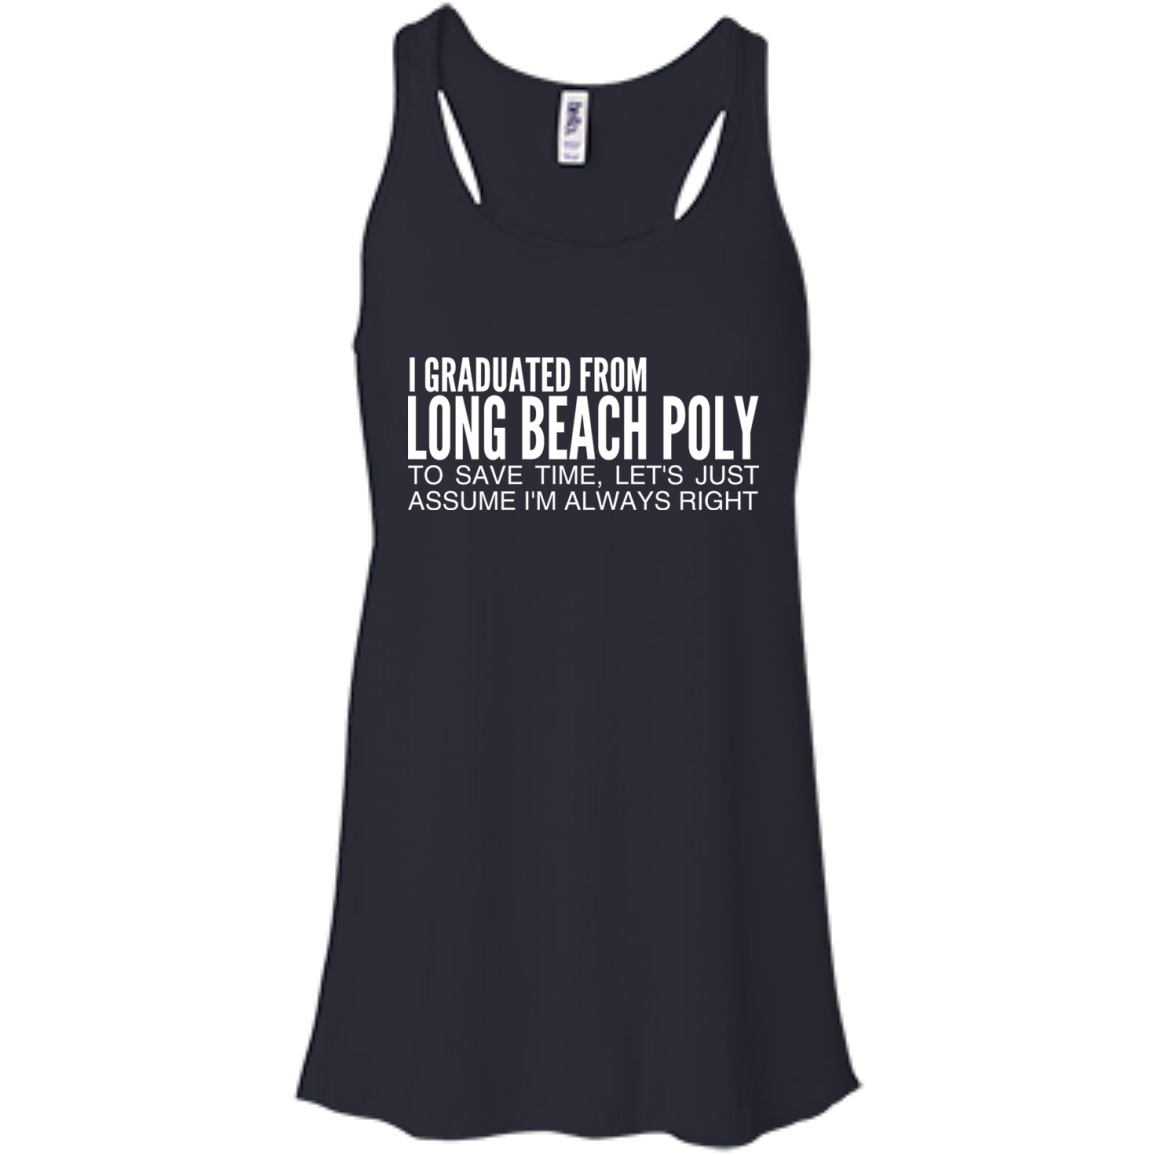 I Graduated From Long Beach Poly To Save Time Lets Just Assume Im Always Right Flowy Racerback Tanks